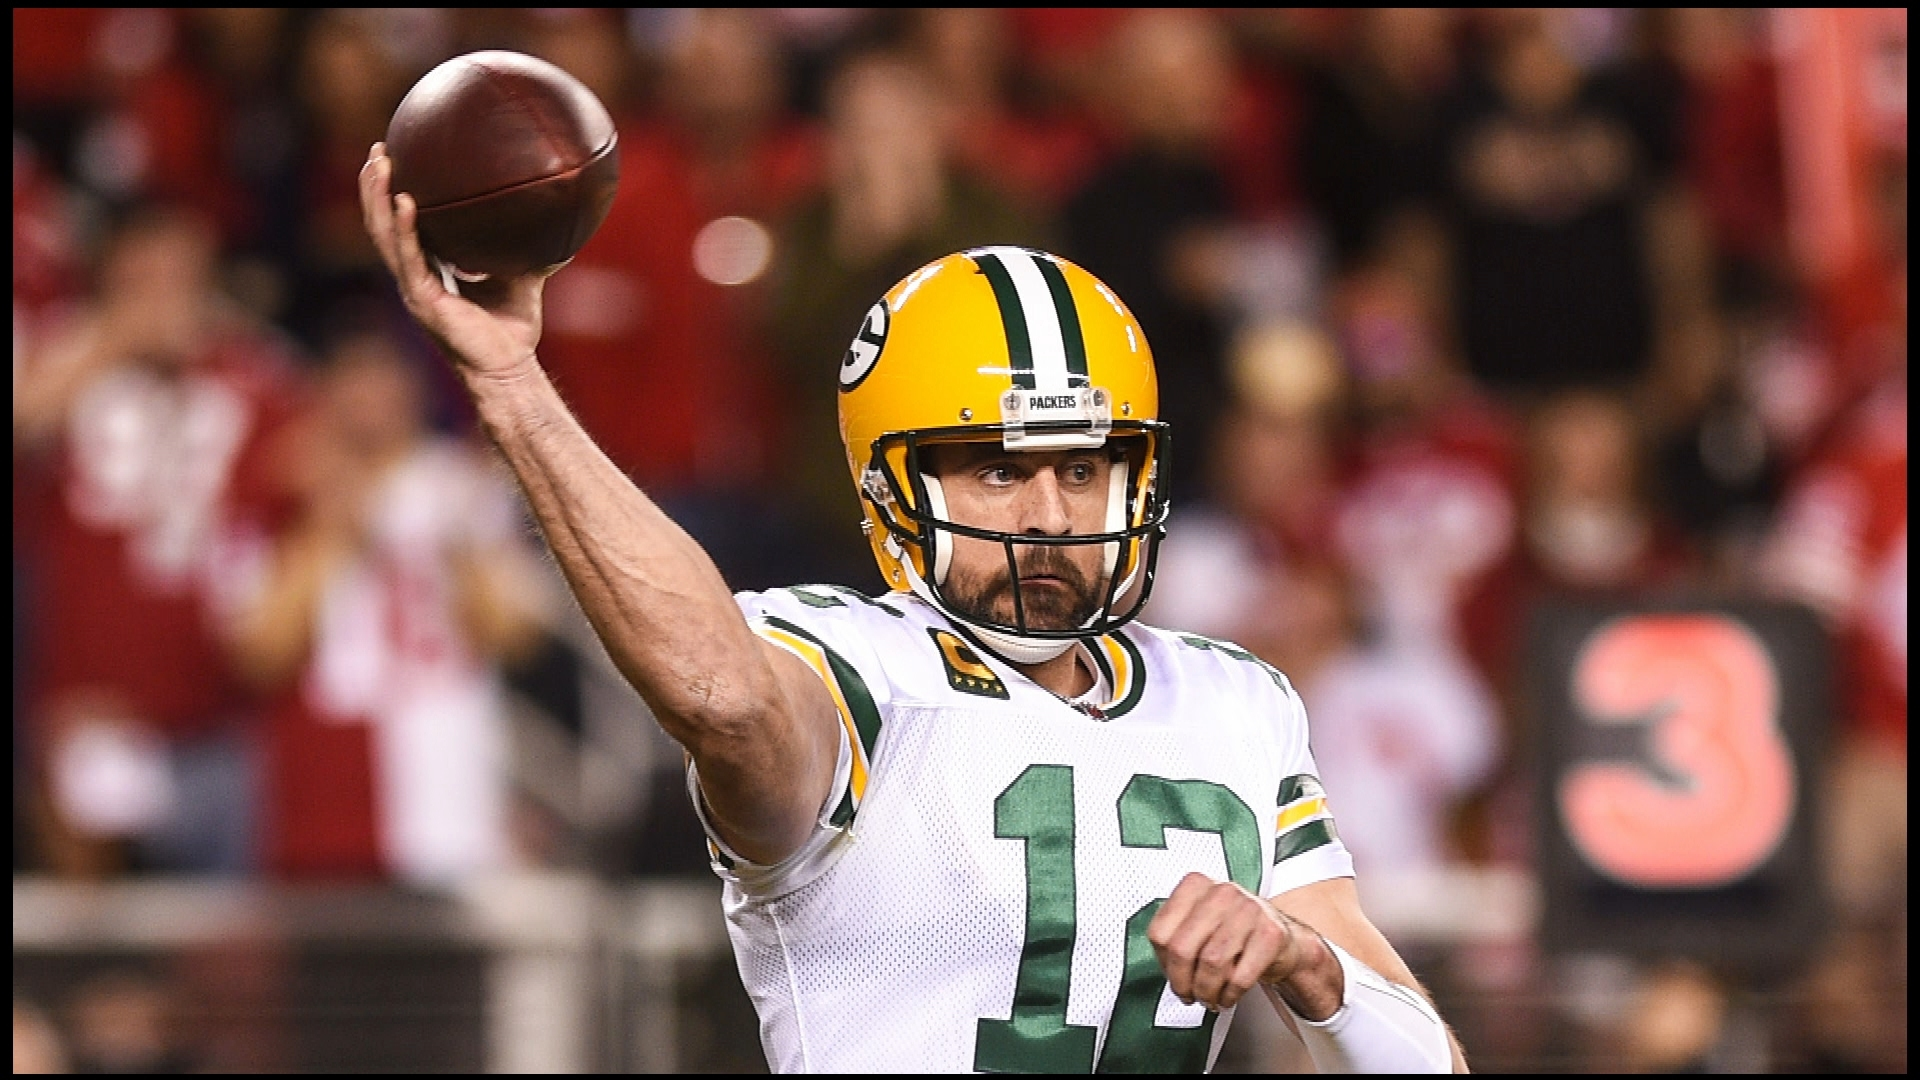 Aaron Rodgers, Packers take high-powered offense to New Orleans on SNF